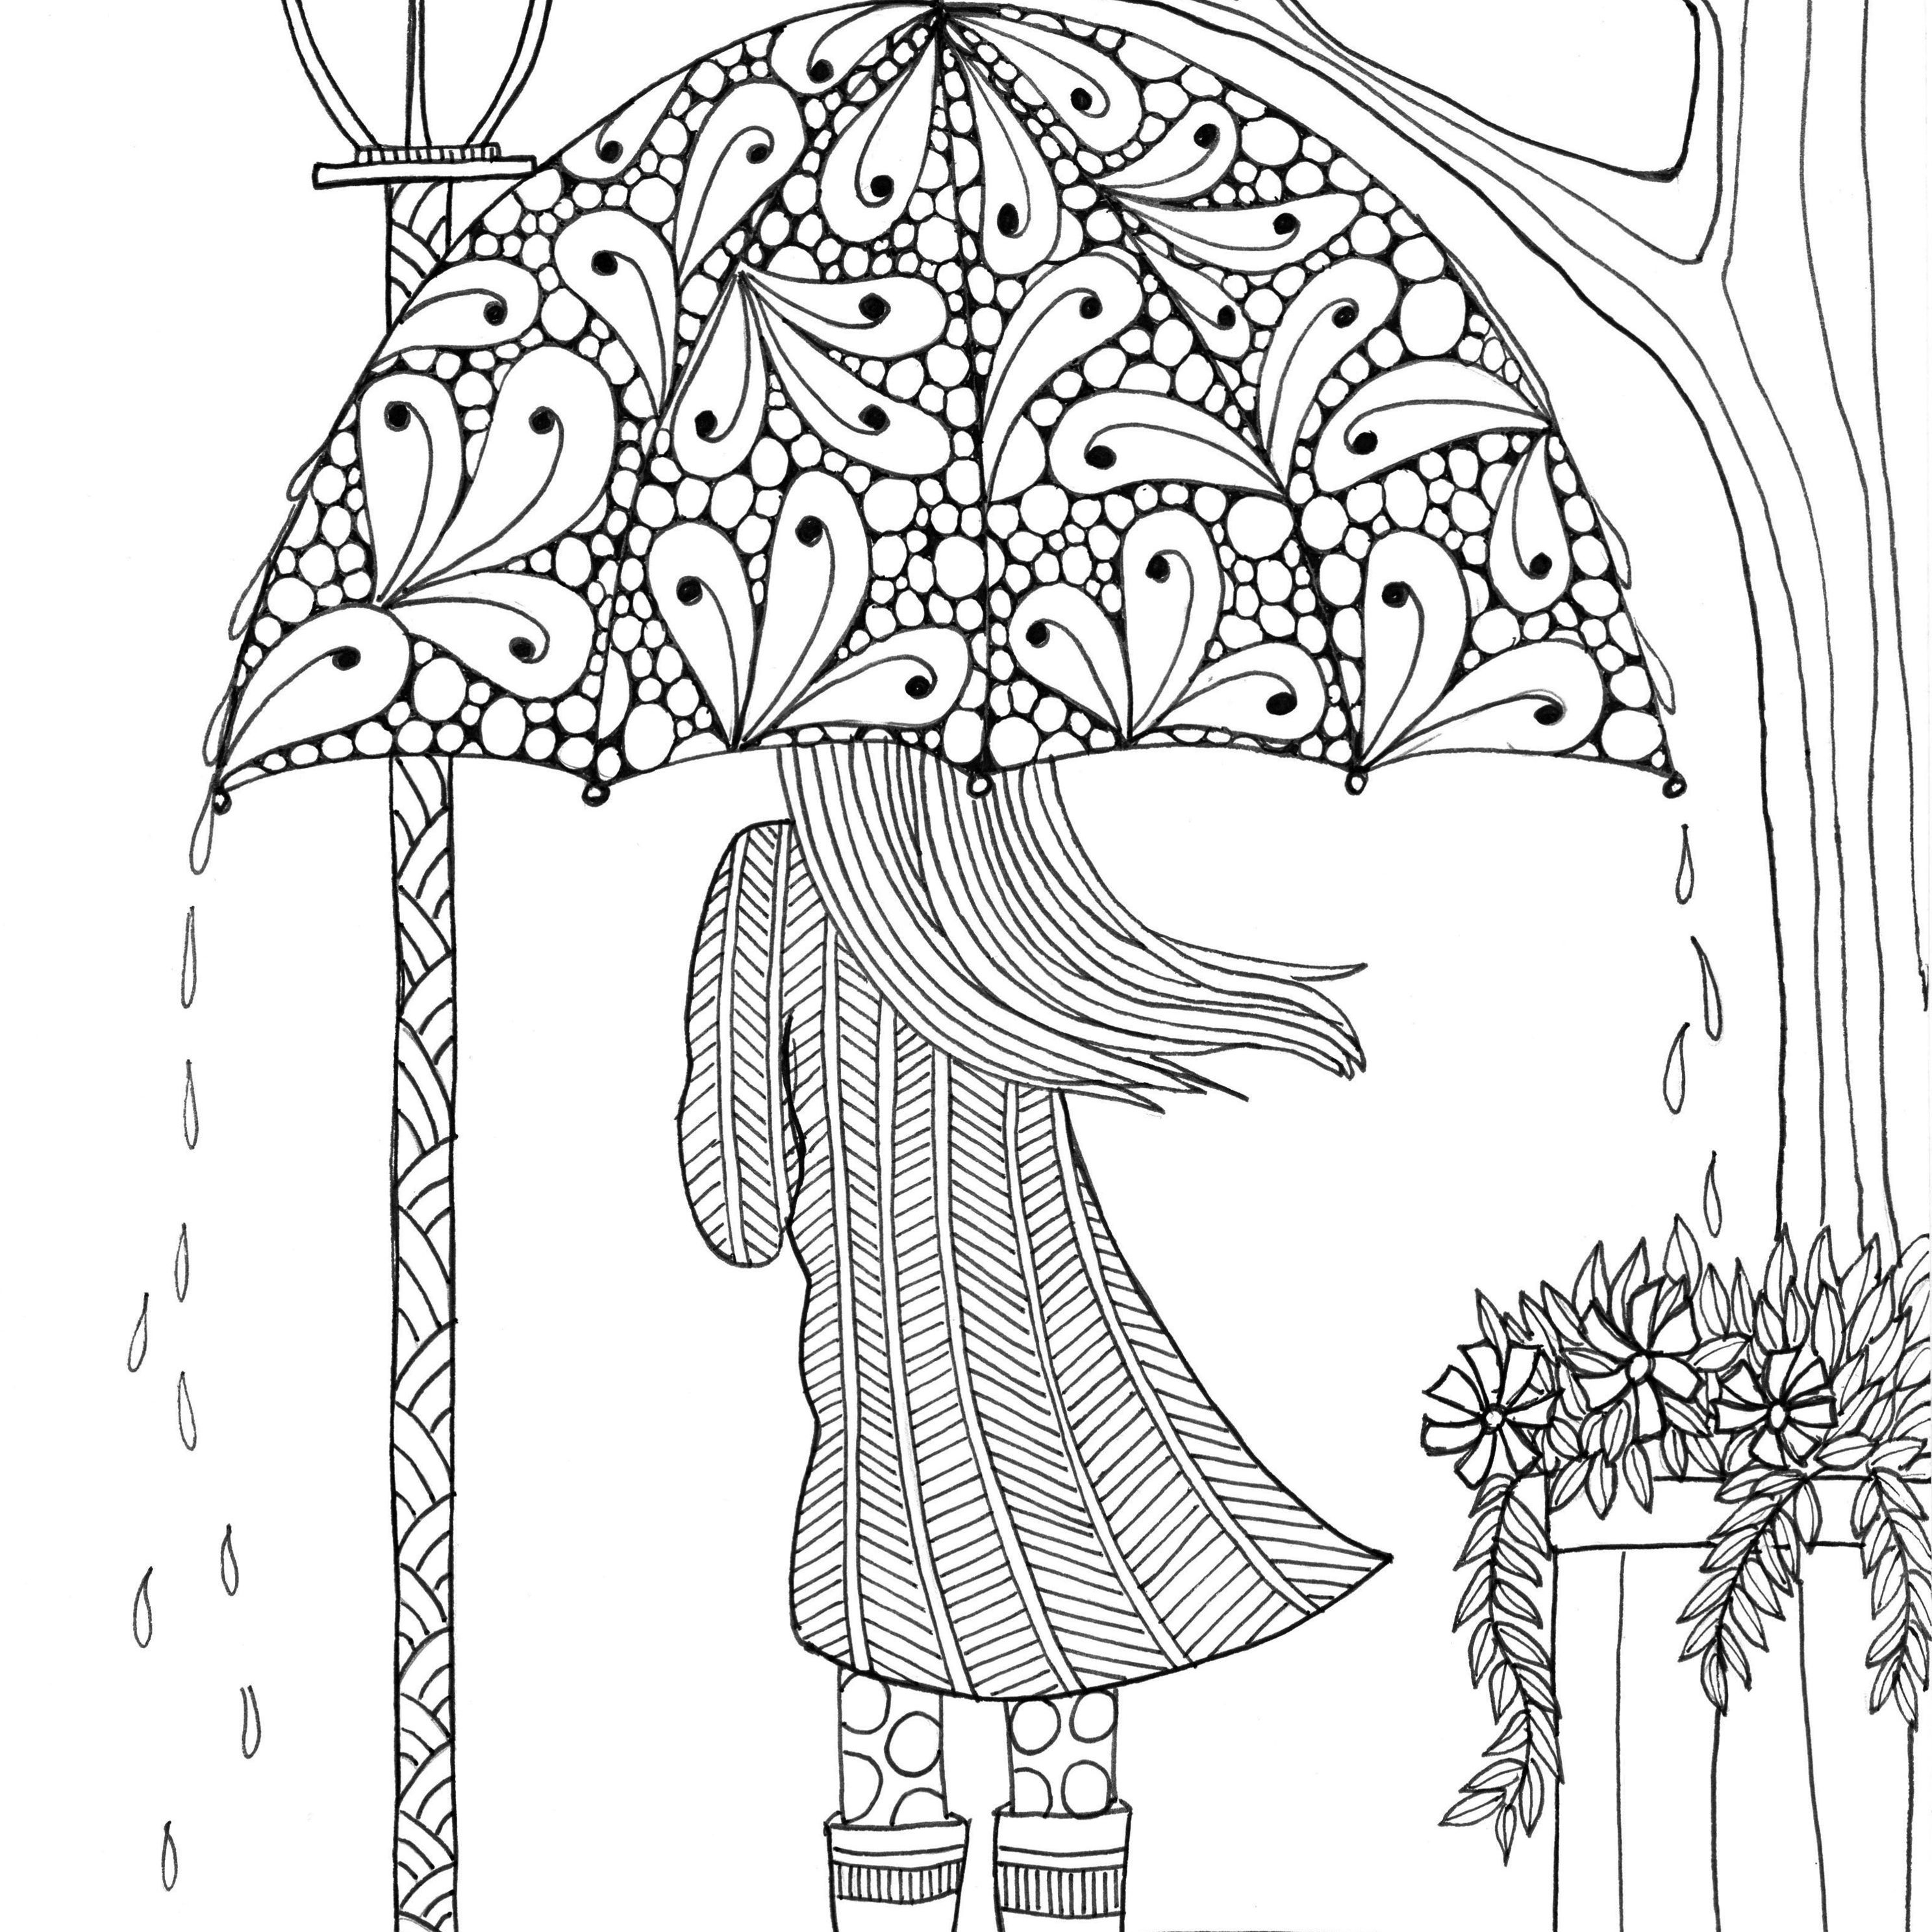 Adult Coloring Pages To Print Free Printable Coloring Pages For Adults